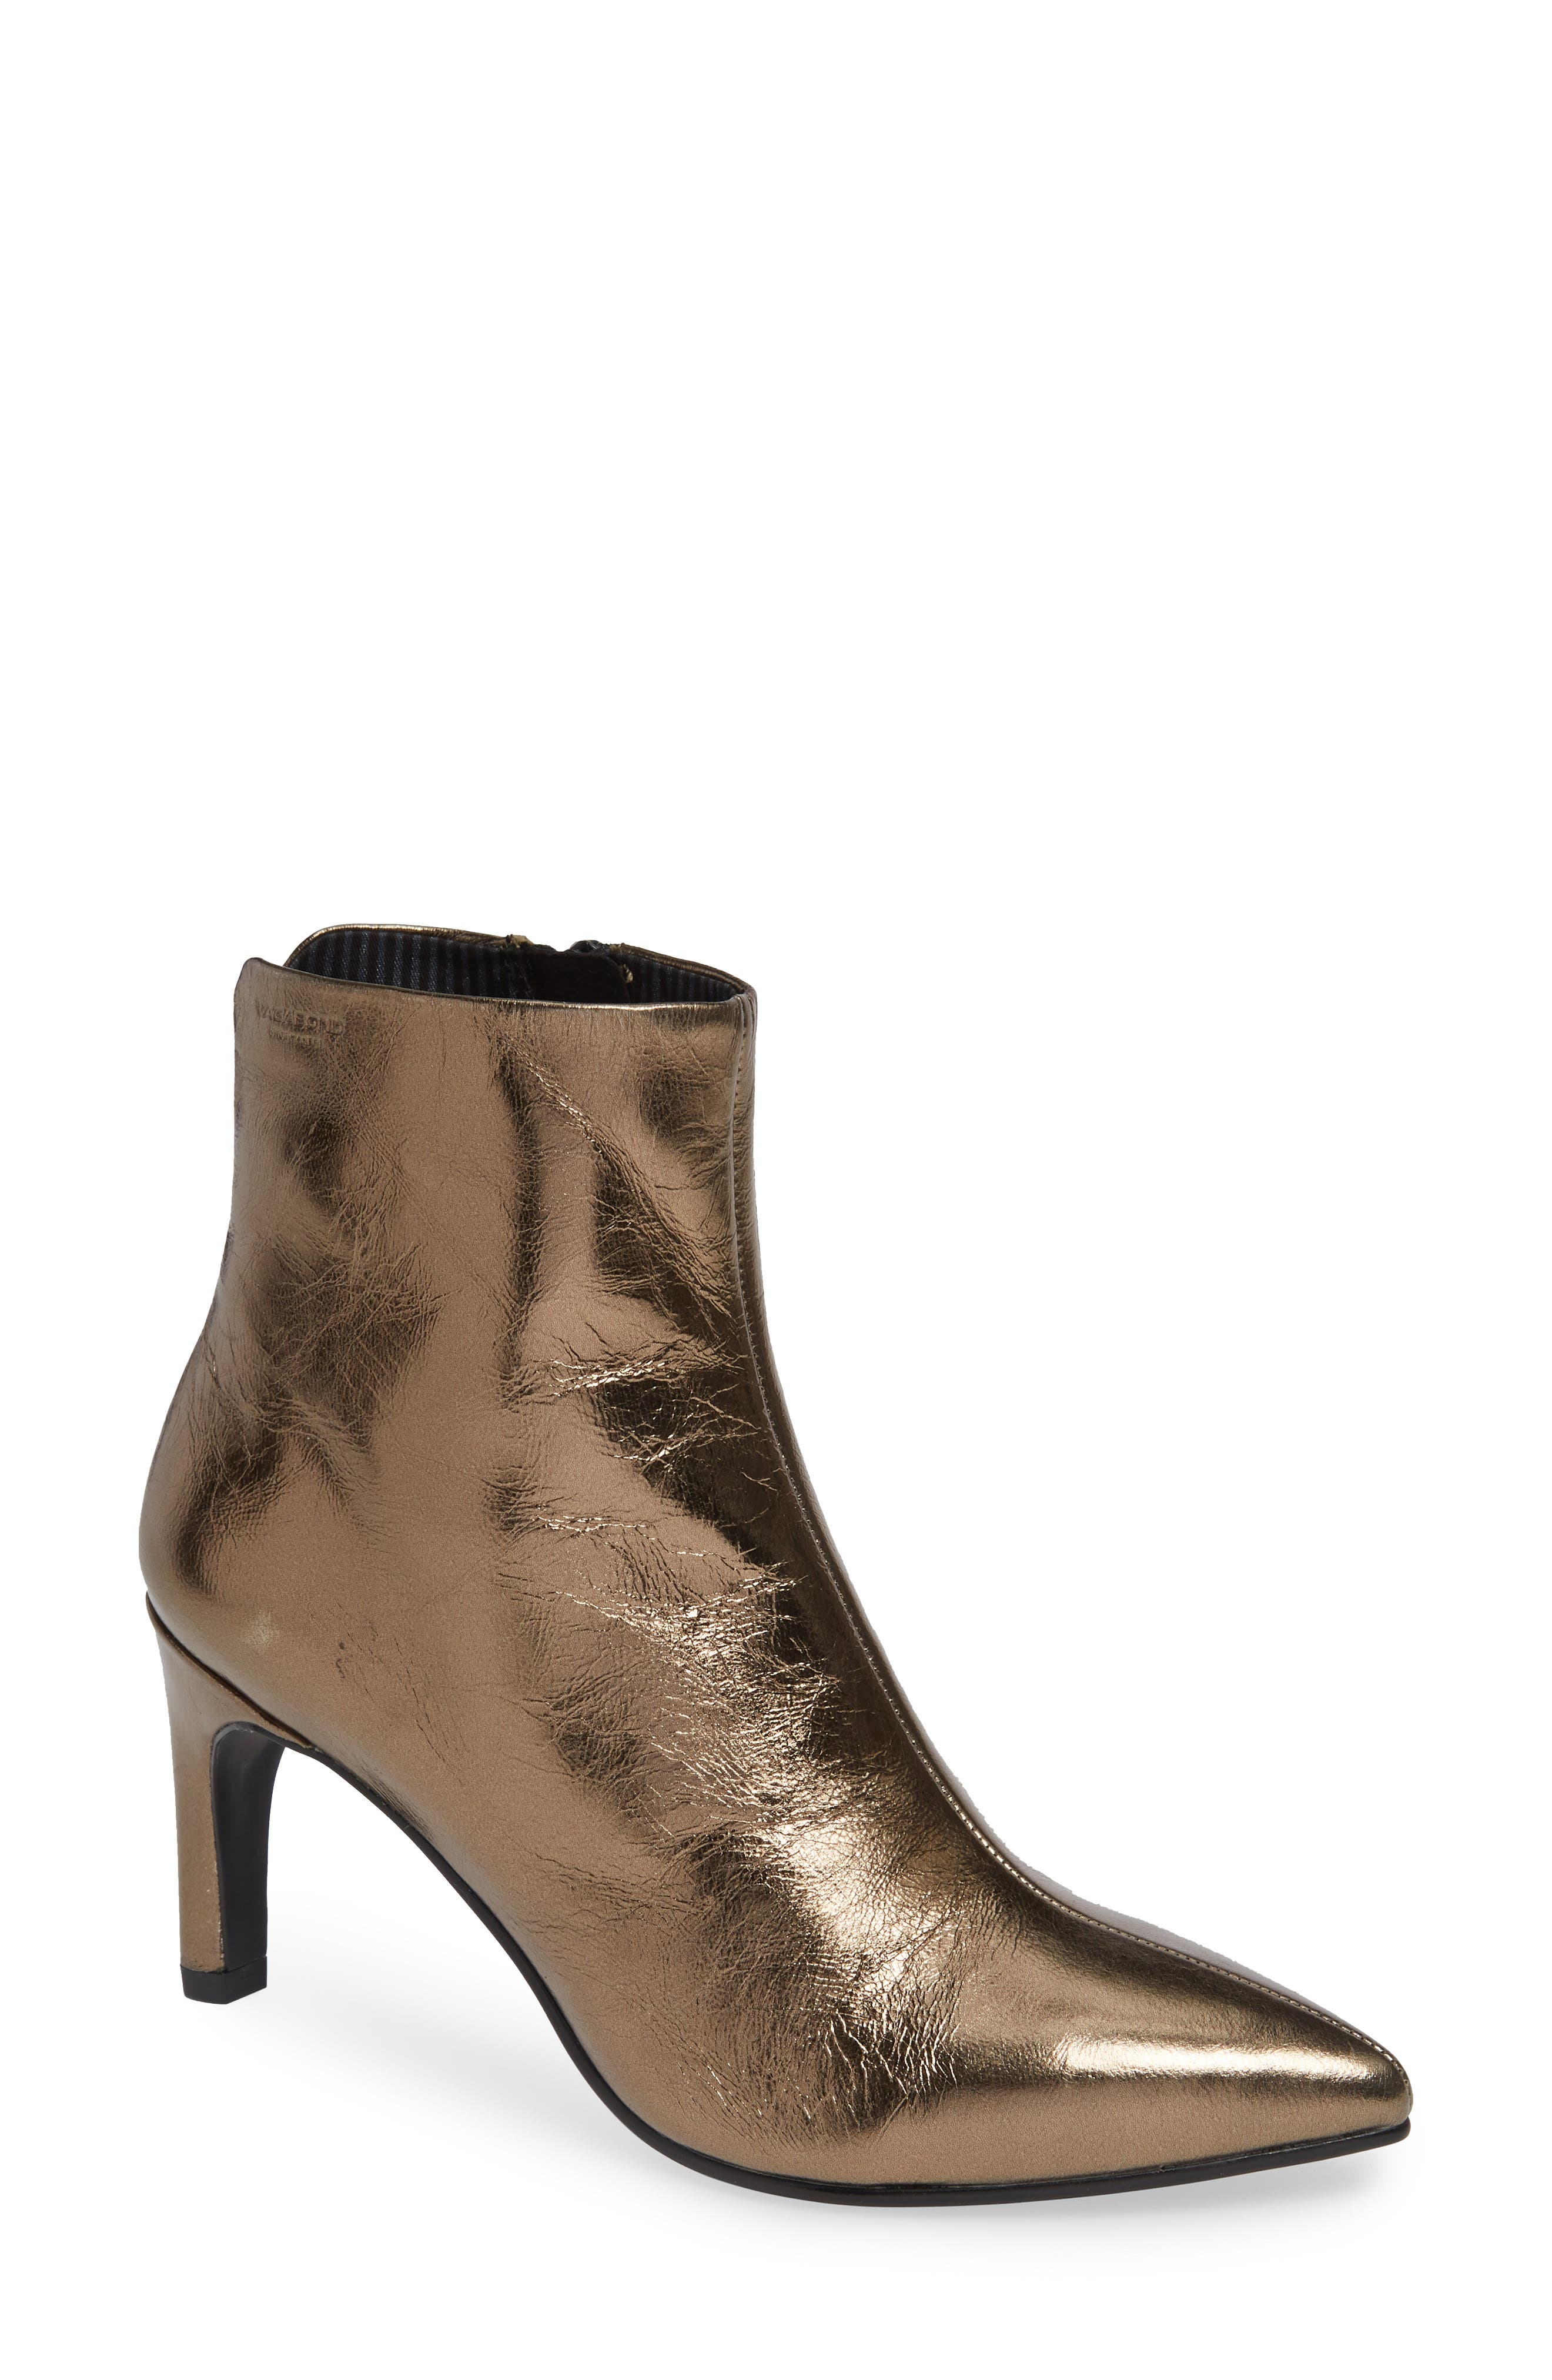 VAGABOND, Shoemakers Whitney Pointy Toe Bootie, Main thumbnail 1, color, BRONZE LEATHER